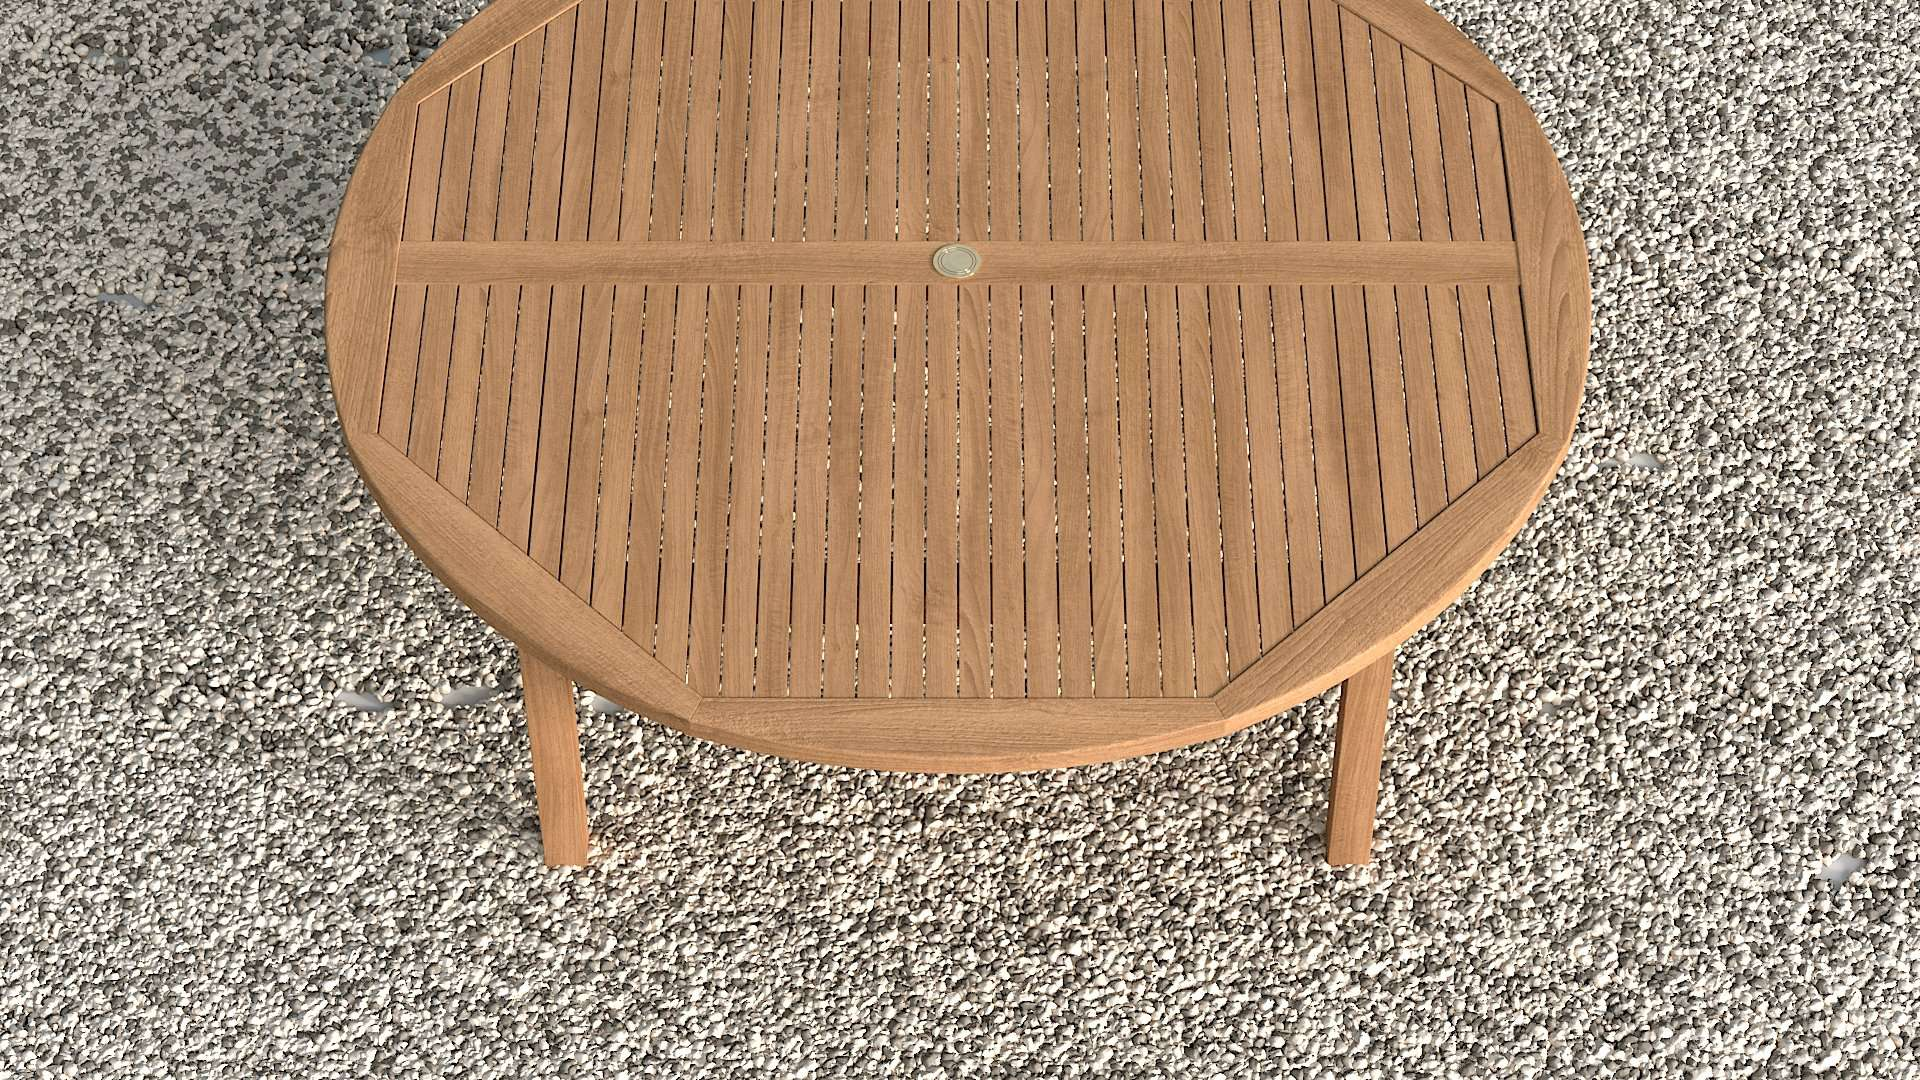 Garden Teak Round Table 210cm (10-12 Seater)  - Chic Teak® | Luxury Teak Furniture